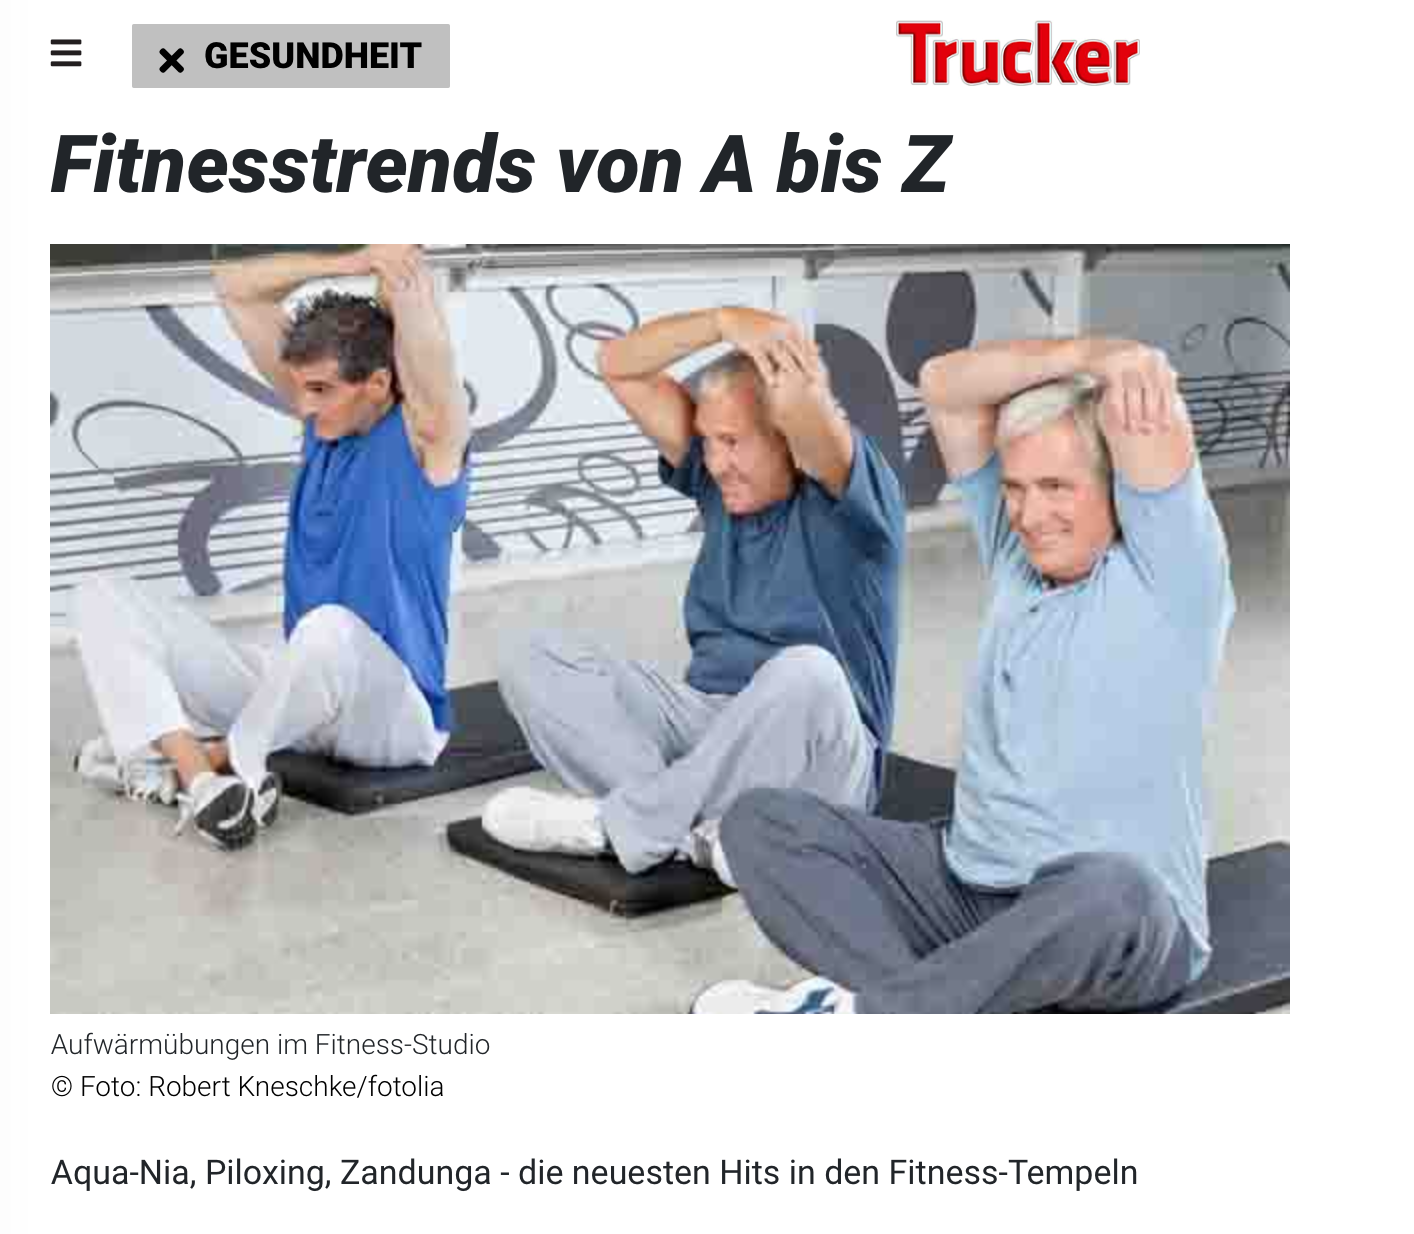 TRUCKER MAGAZINE FEBRUARY 13, 2013: Fitnesstrends von A bis Z